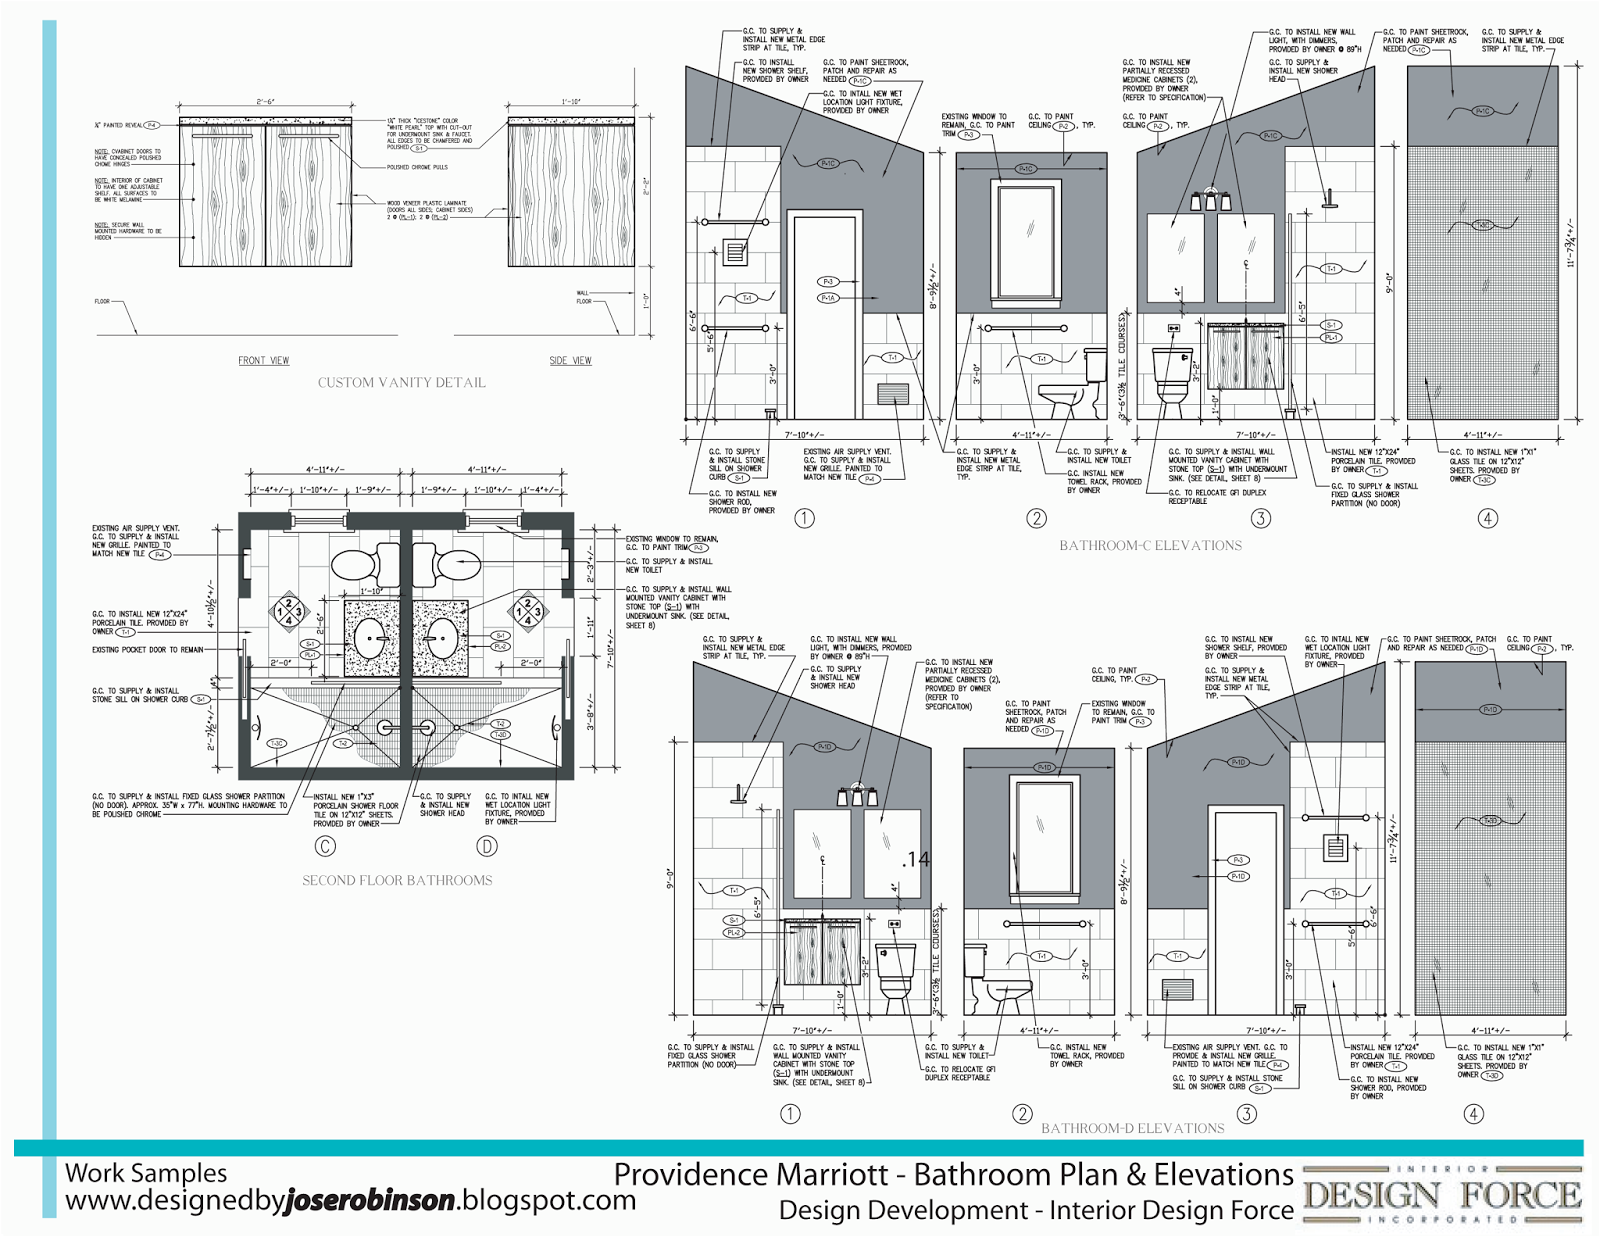 hight resolution of in one of my college design space planning classes the project was to convert two apartments in to one open more lofty apartment with a home office for